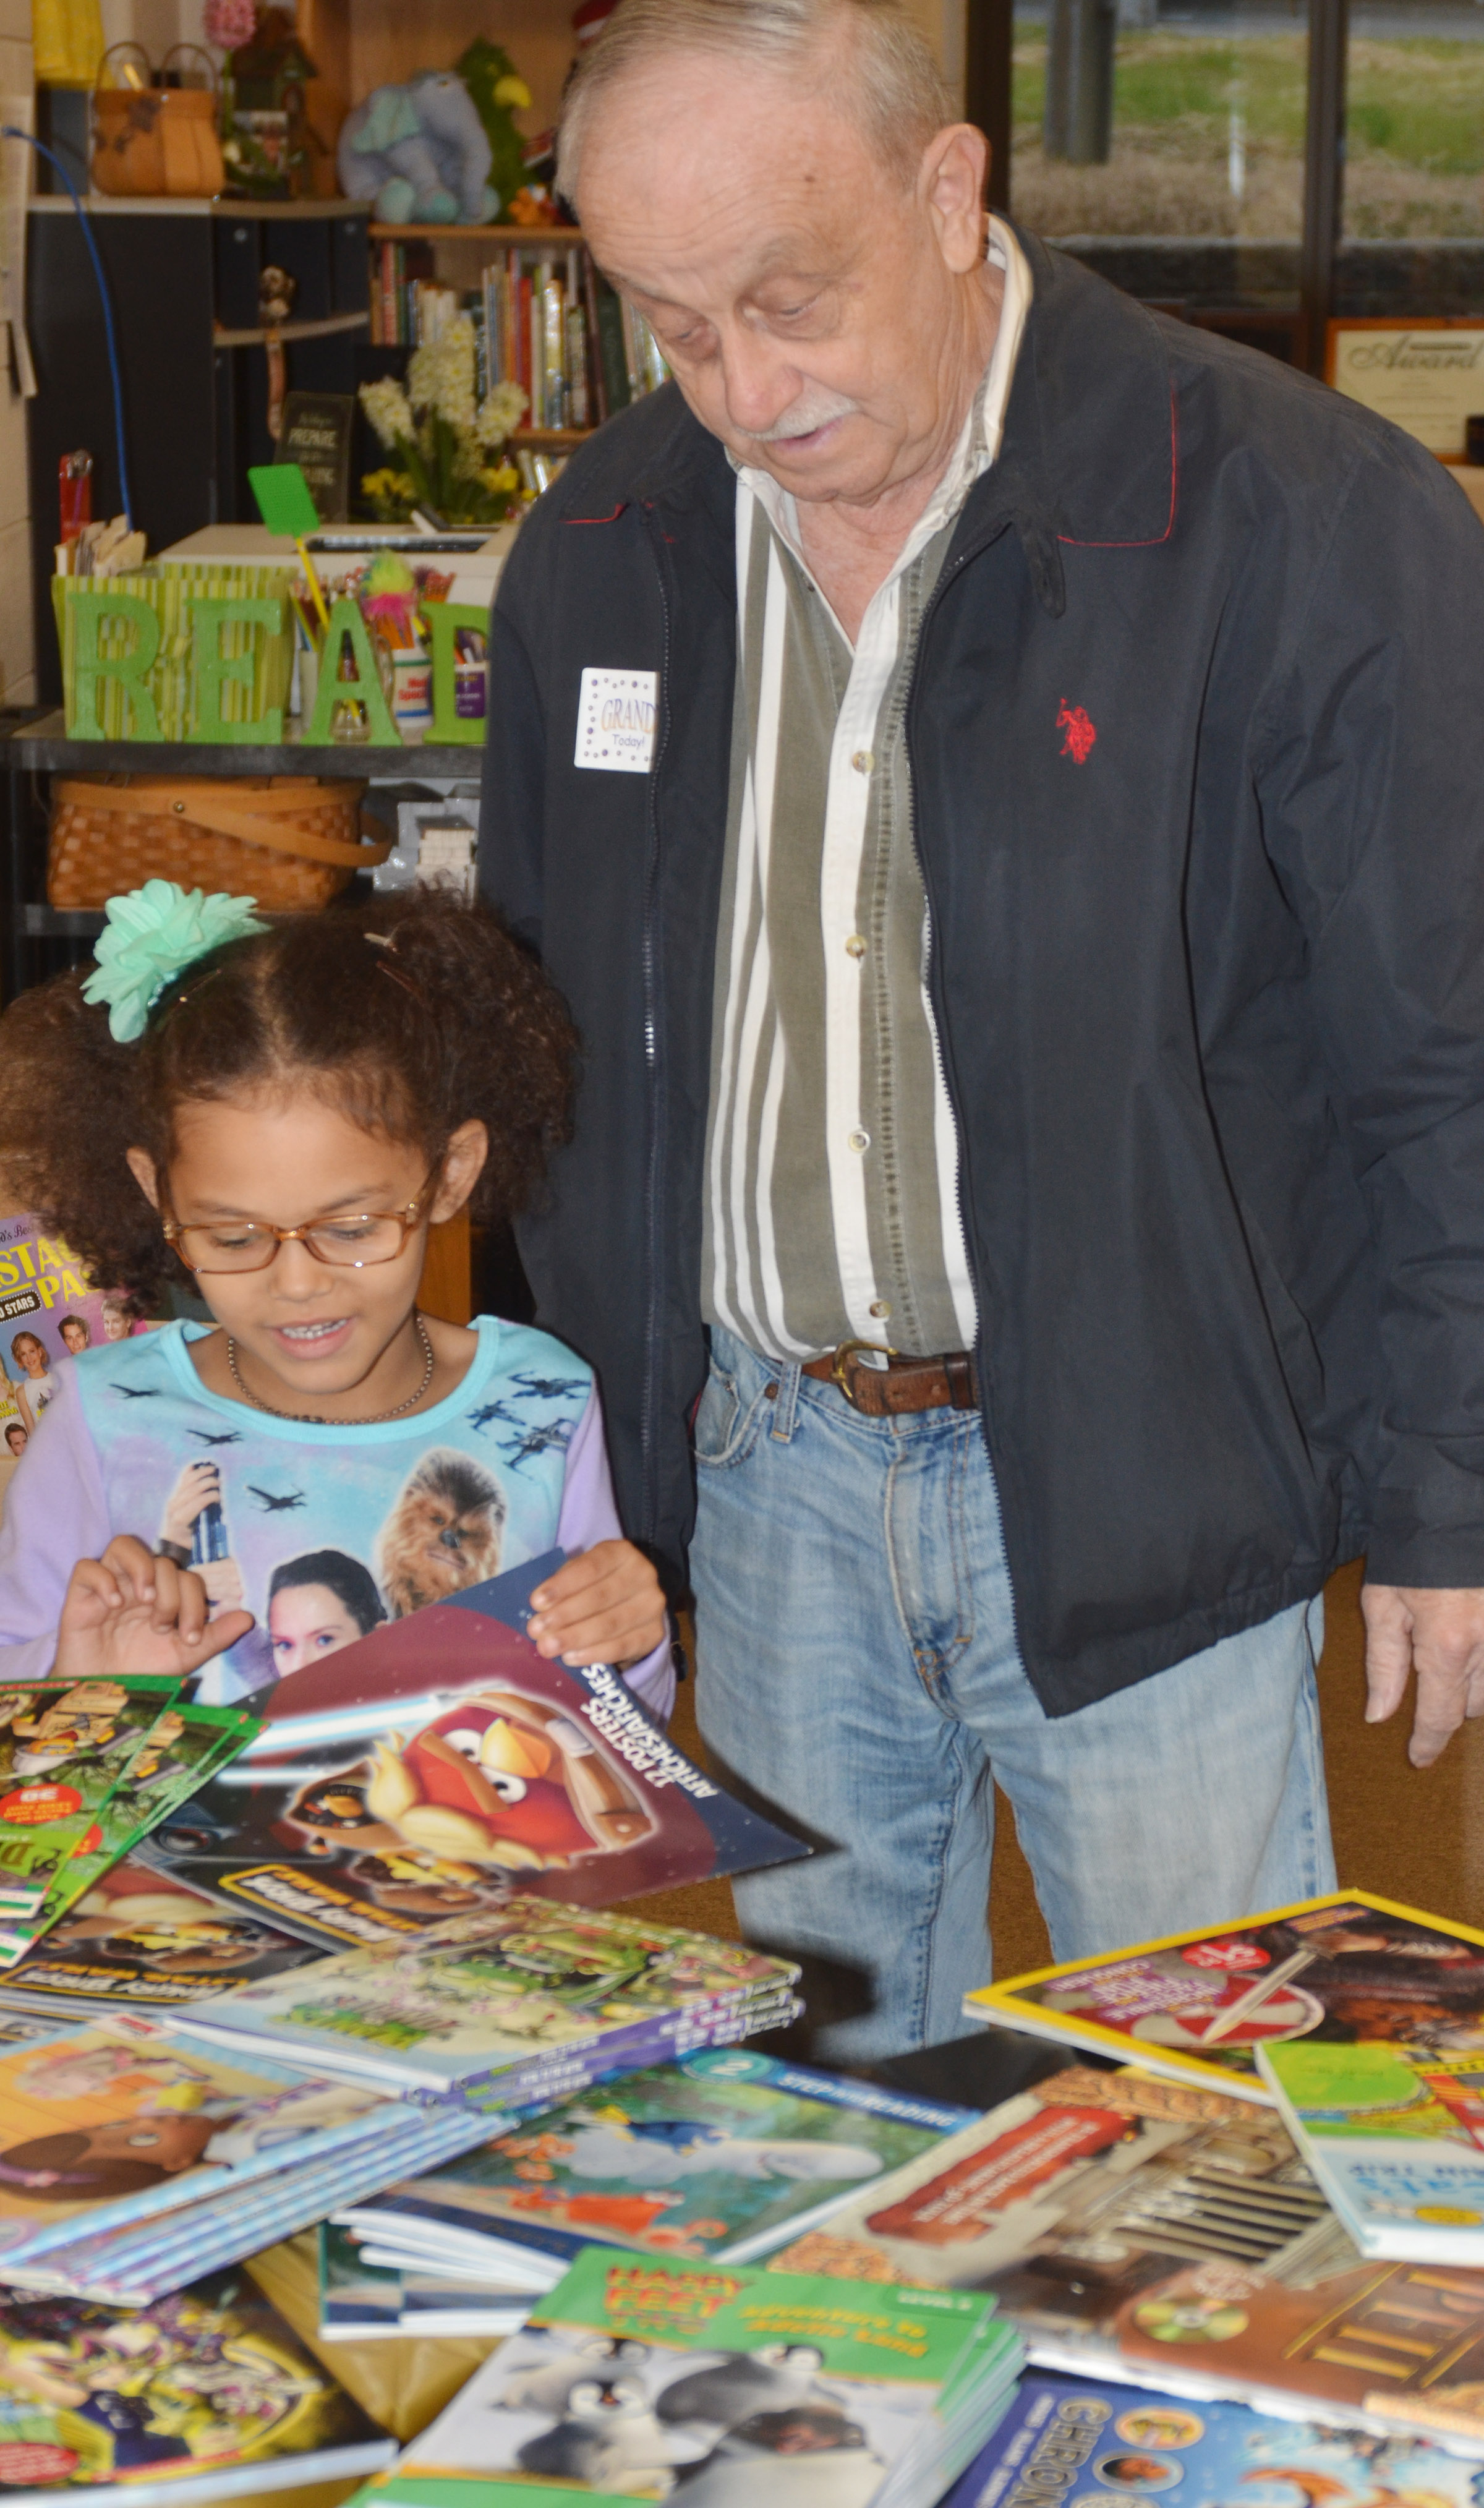 CES kindergartener Marlee Dickens shops for books with her grandfather, Jim Dickens.